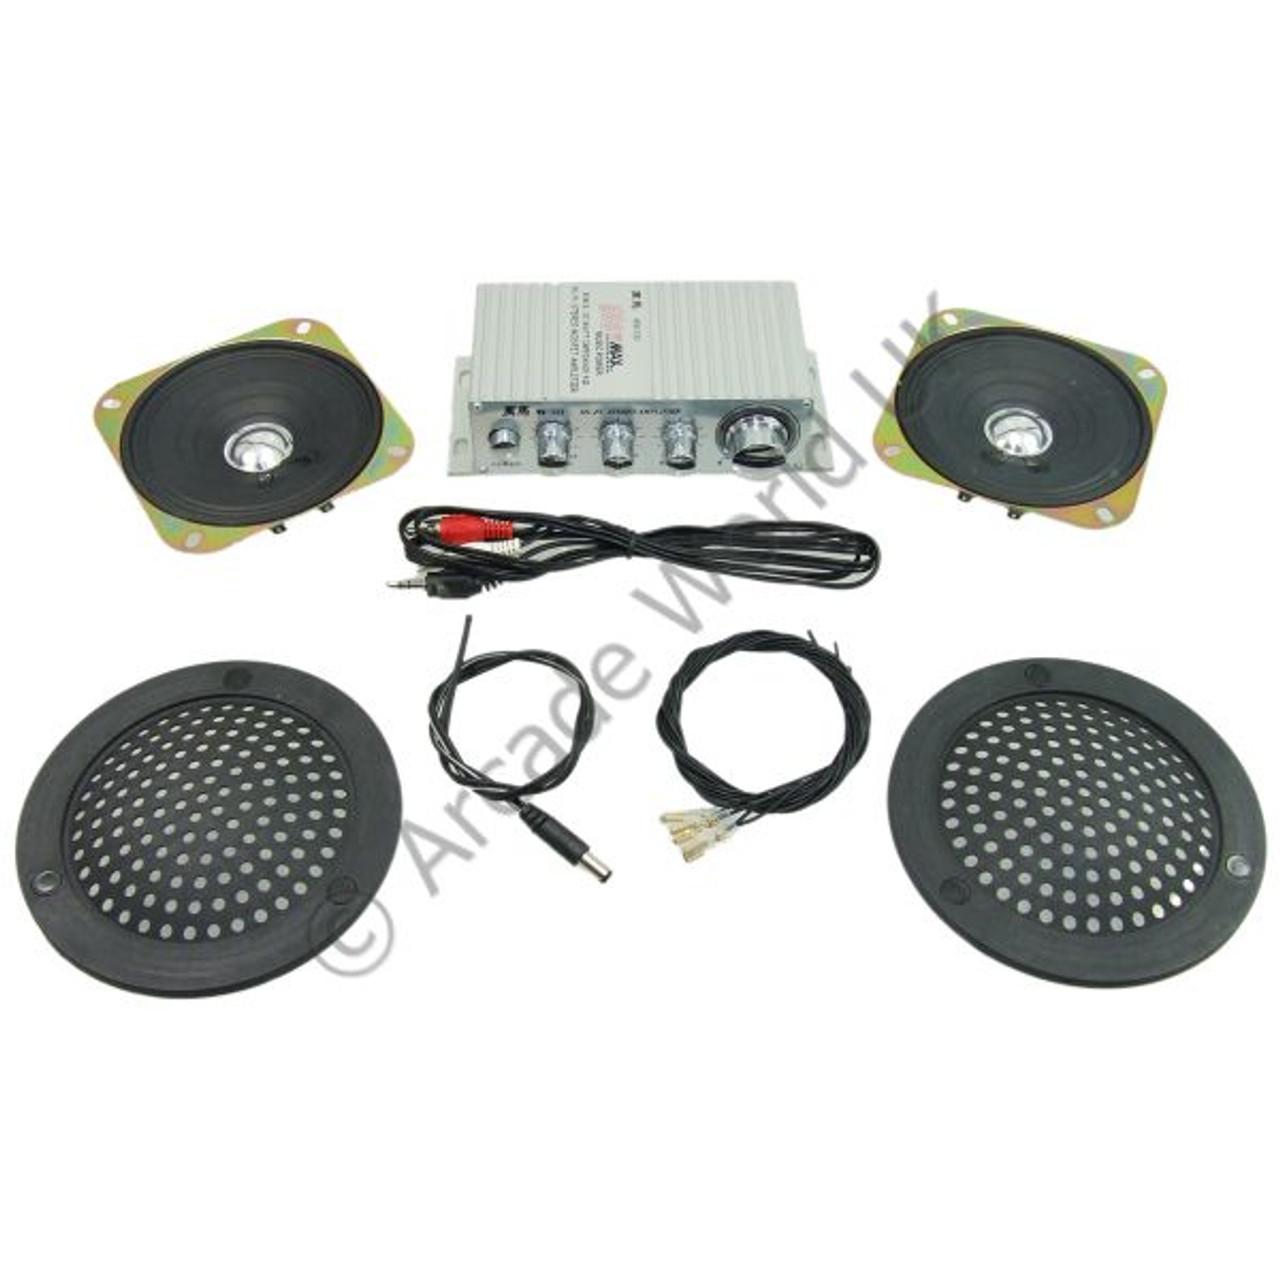 mosfet stereo sound amplifier kit for arcade machine projects - arcade  world uk